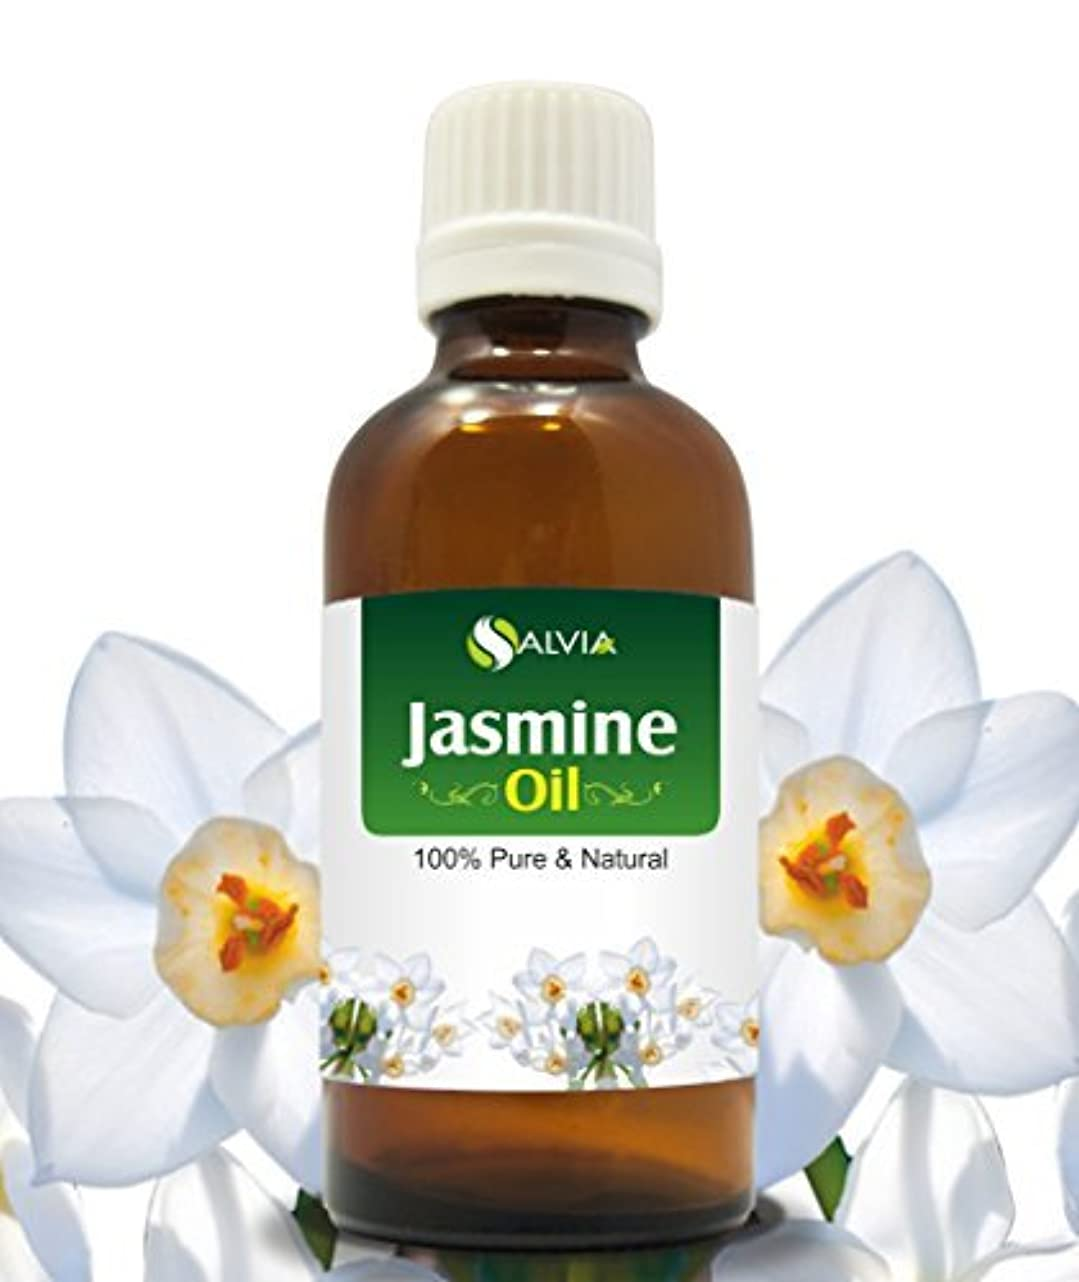 シールド差別牽引JASMINE OIL 100% NATURAL PURE UNDILUTED UNCUT ESSENTIAL OILS 30ml by SALVIA